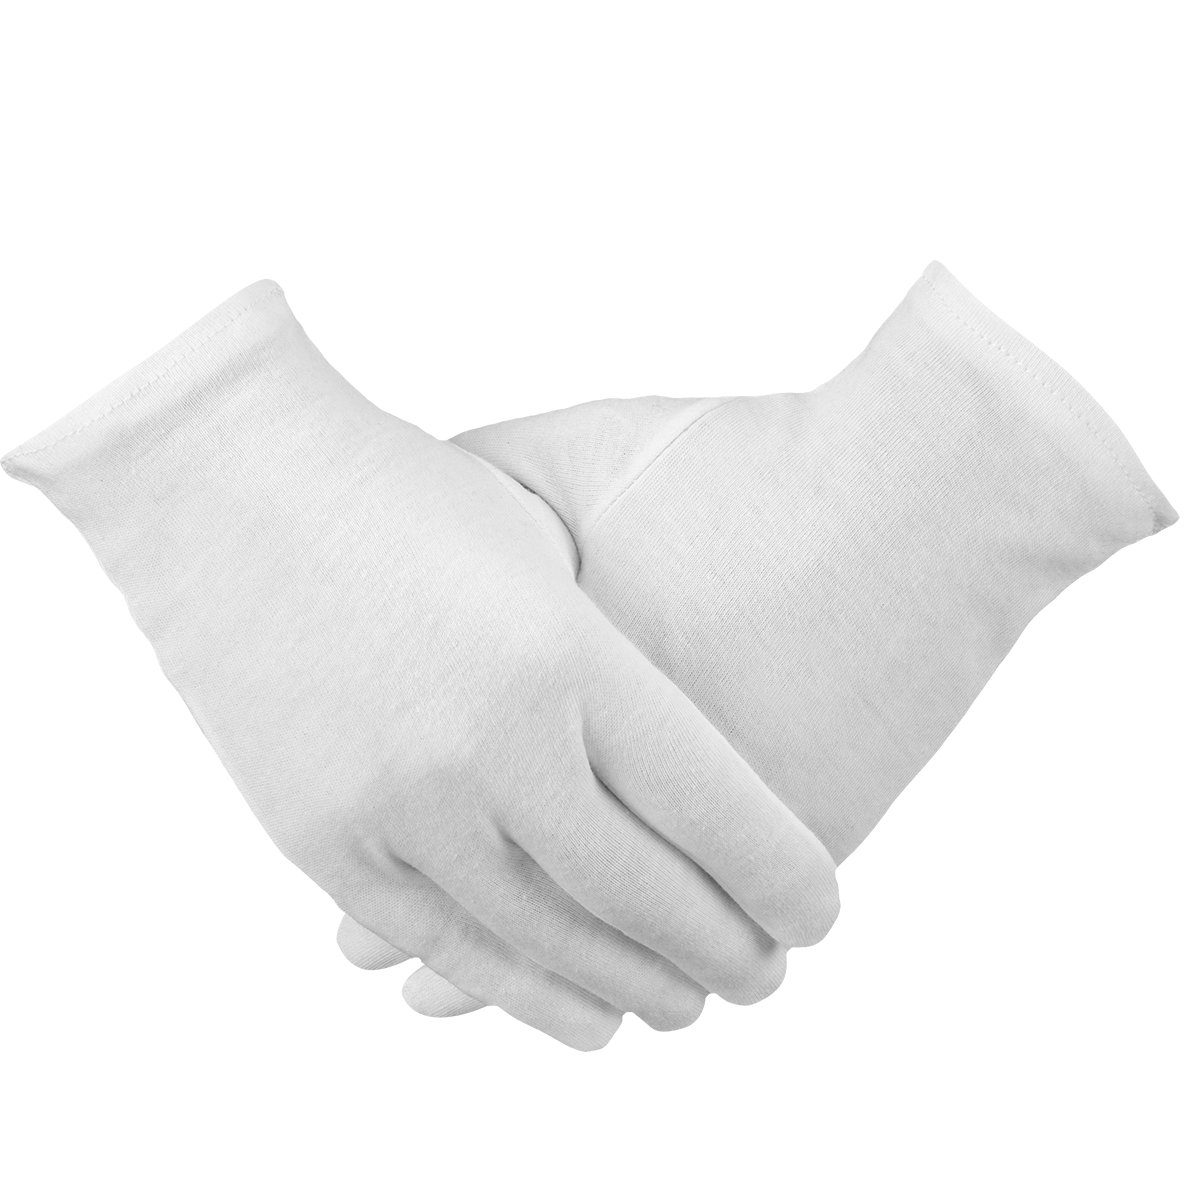 Moisturizing Cotton Gloves